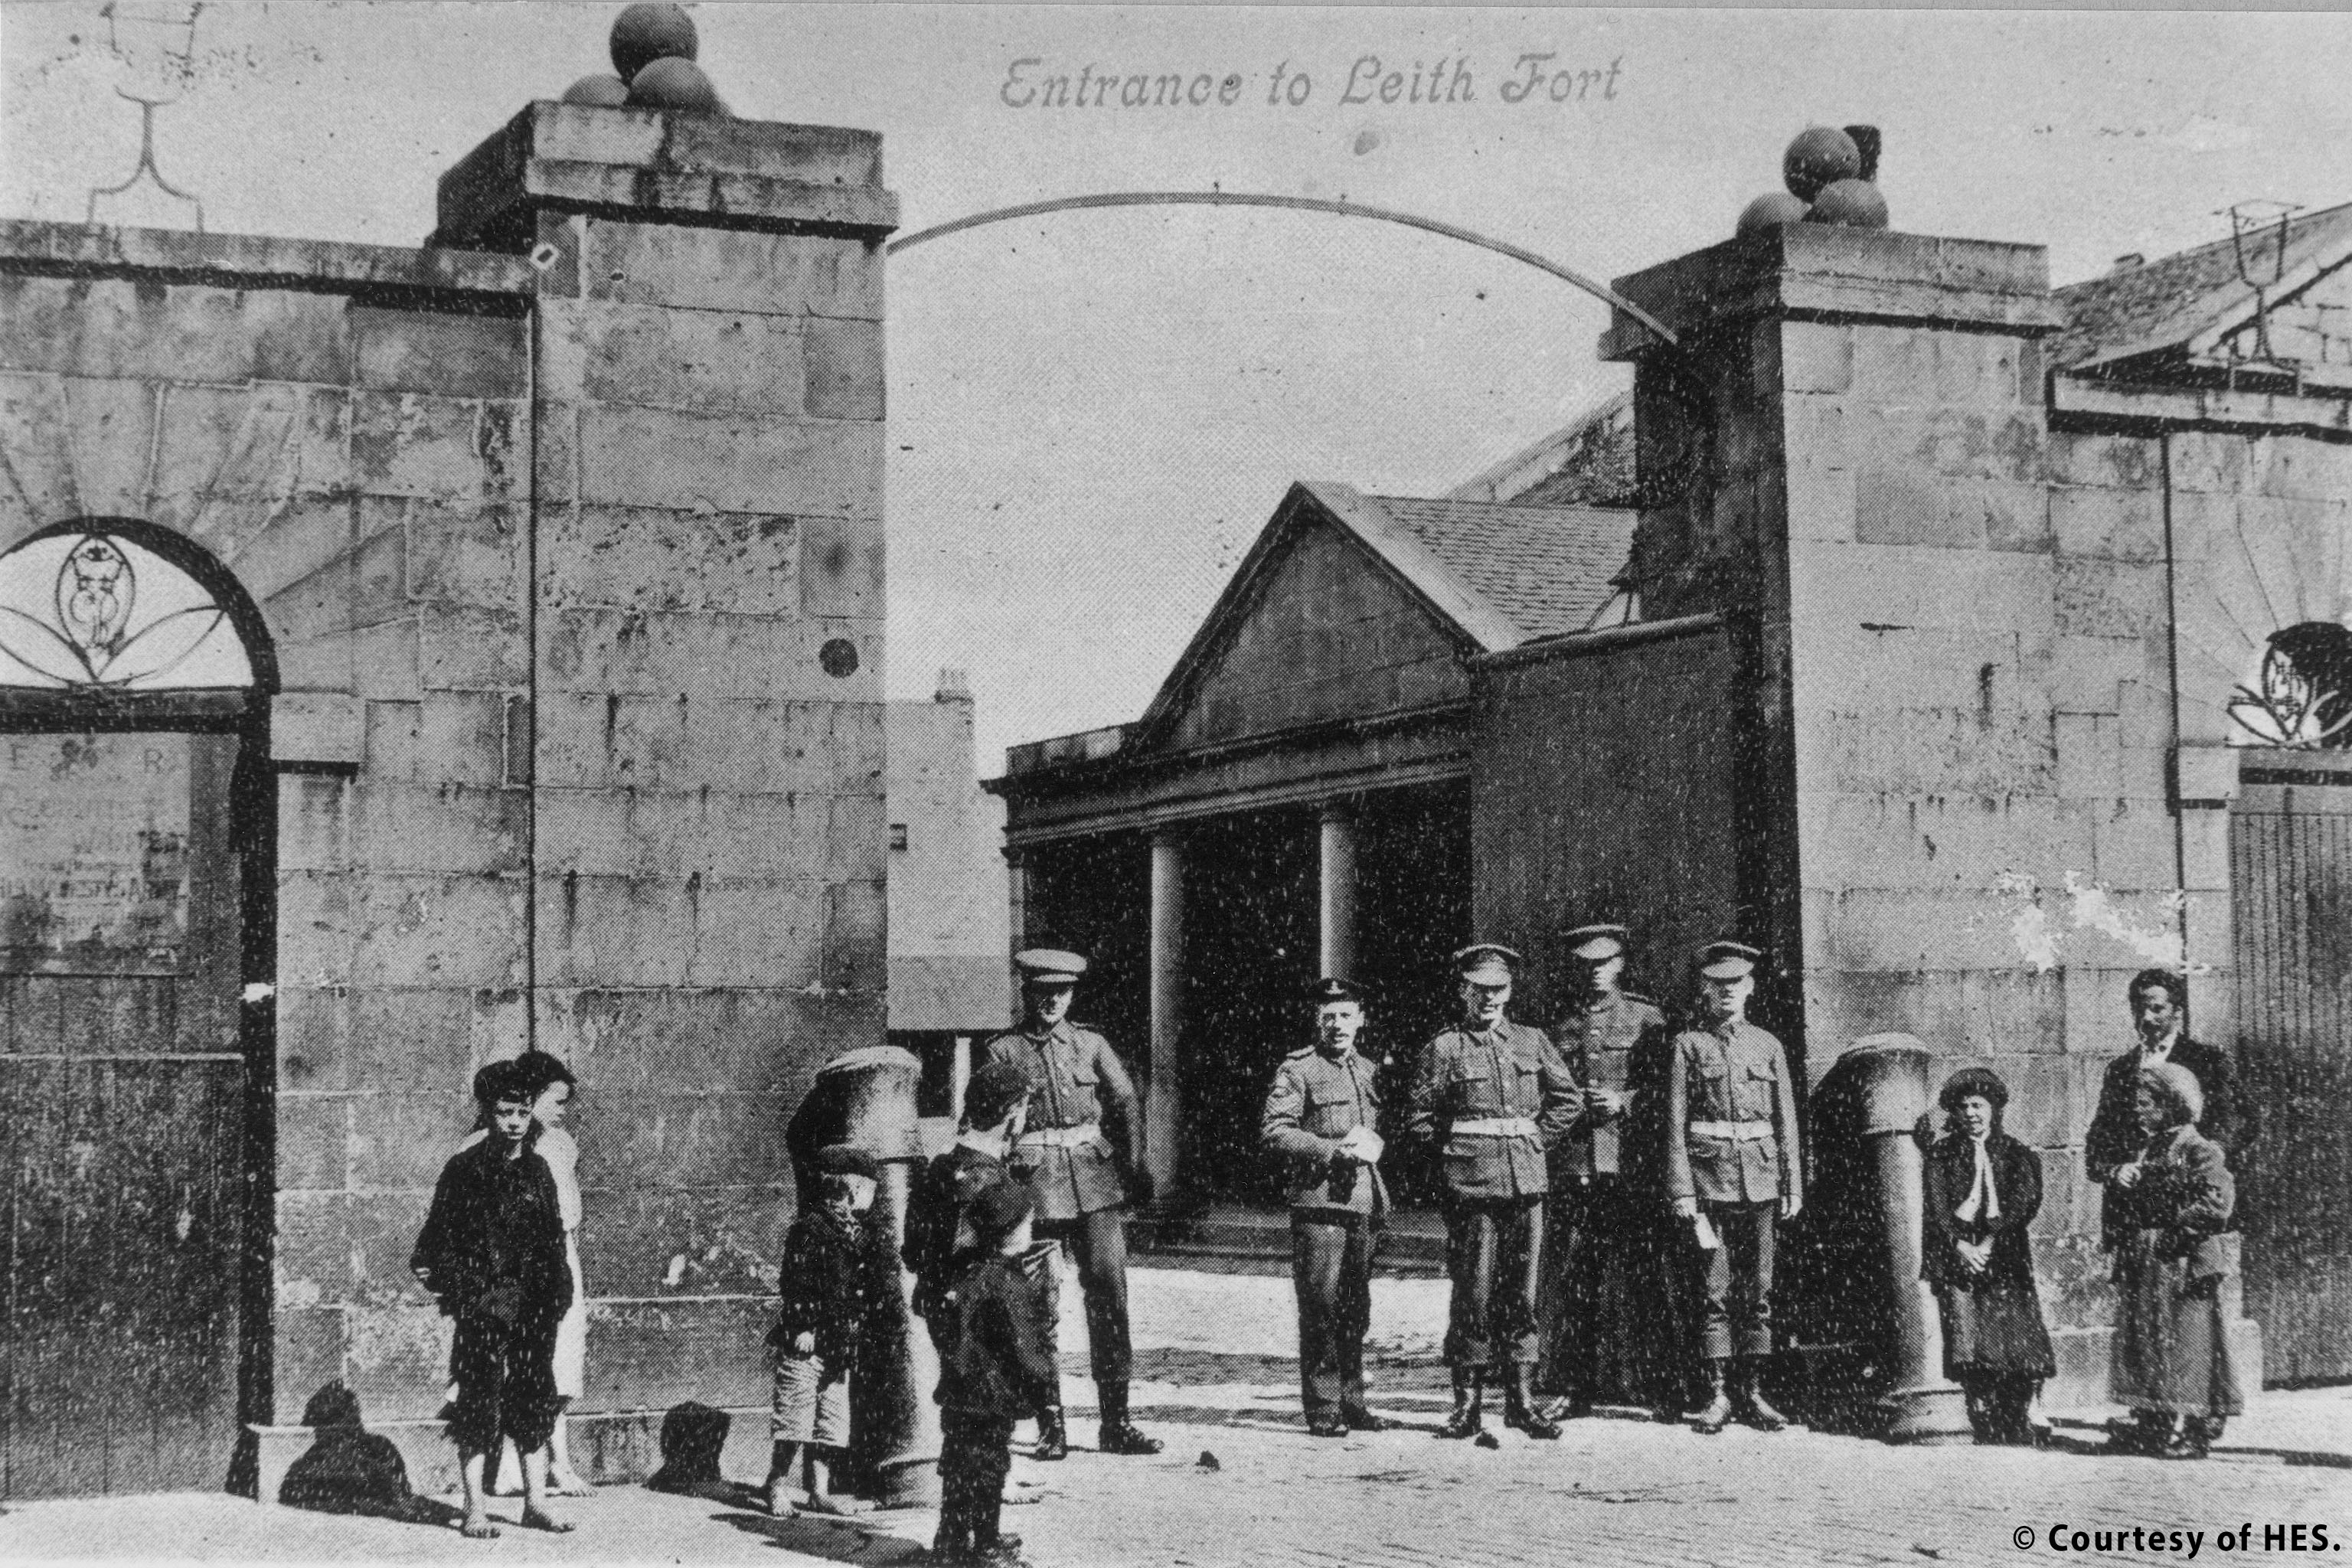 An archive image of the entrance to Leith fort. A large stone gateway is open showing a glimpse of fort buildings. Five soldiers in uniform are standing in the gateway. A number of local children are standing nearby.